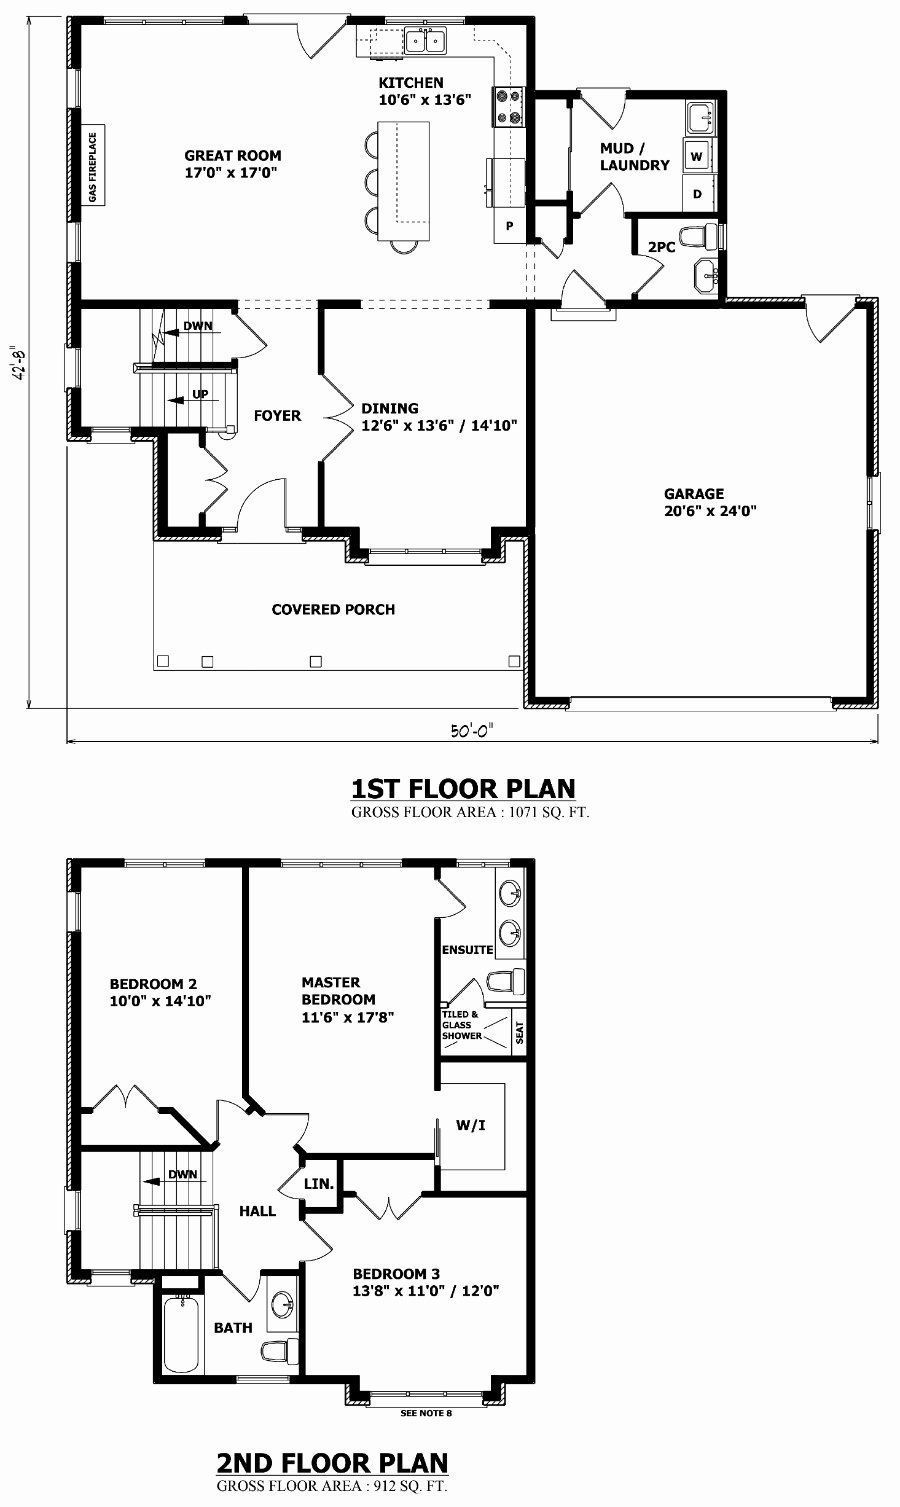 2 Storey House Plans Inspirational Canadian Home Designs Custom House Plans Stock House In 2020 Two Storey House Plans Custom Home Plans House Floor Plans